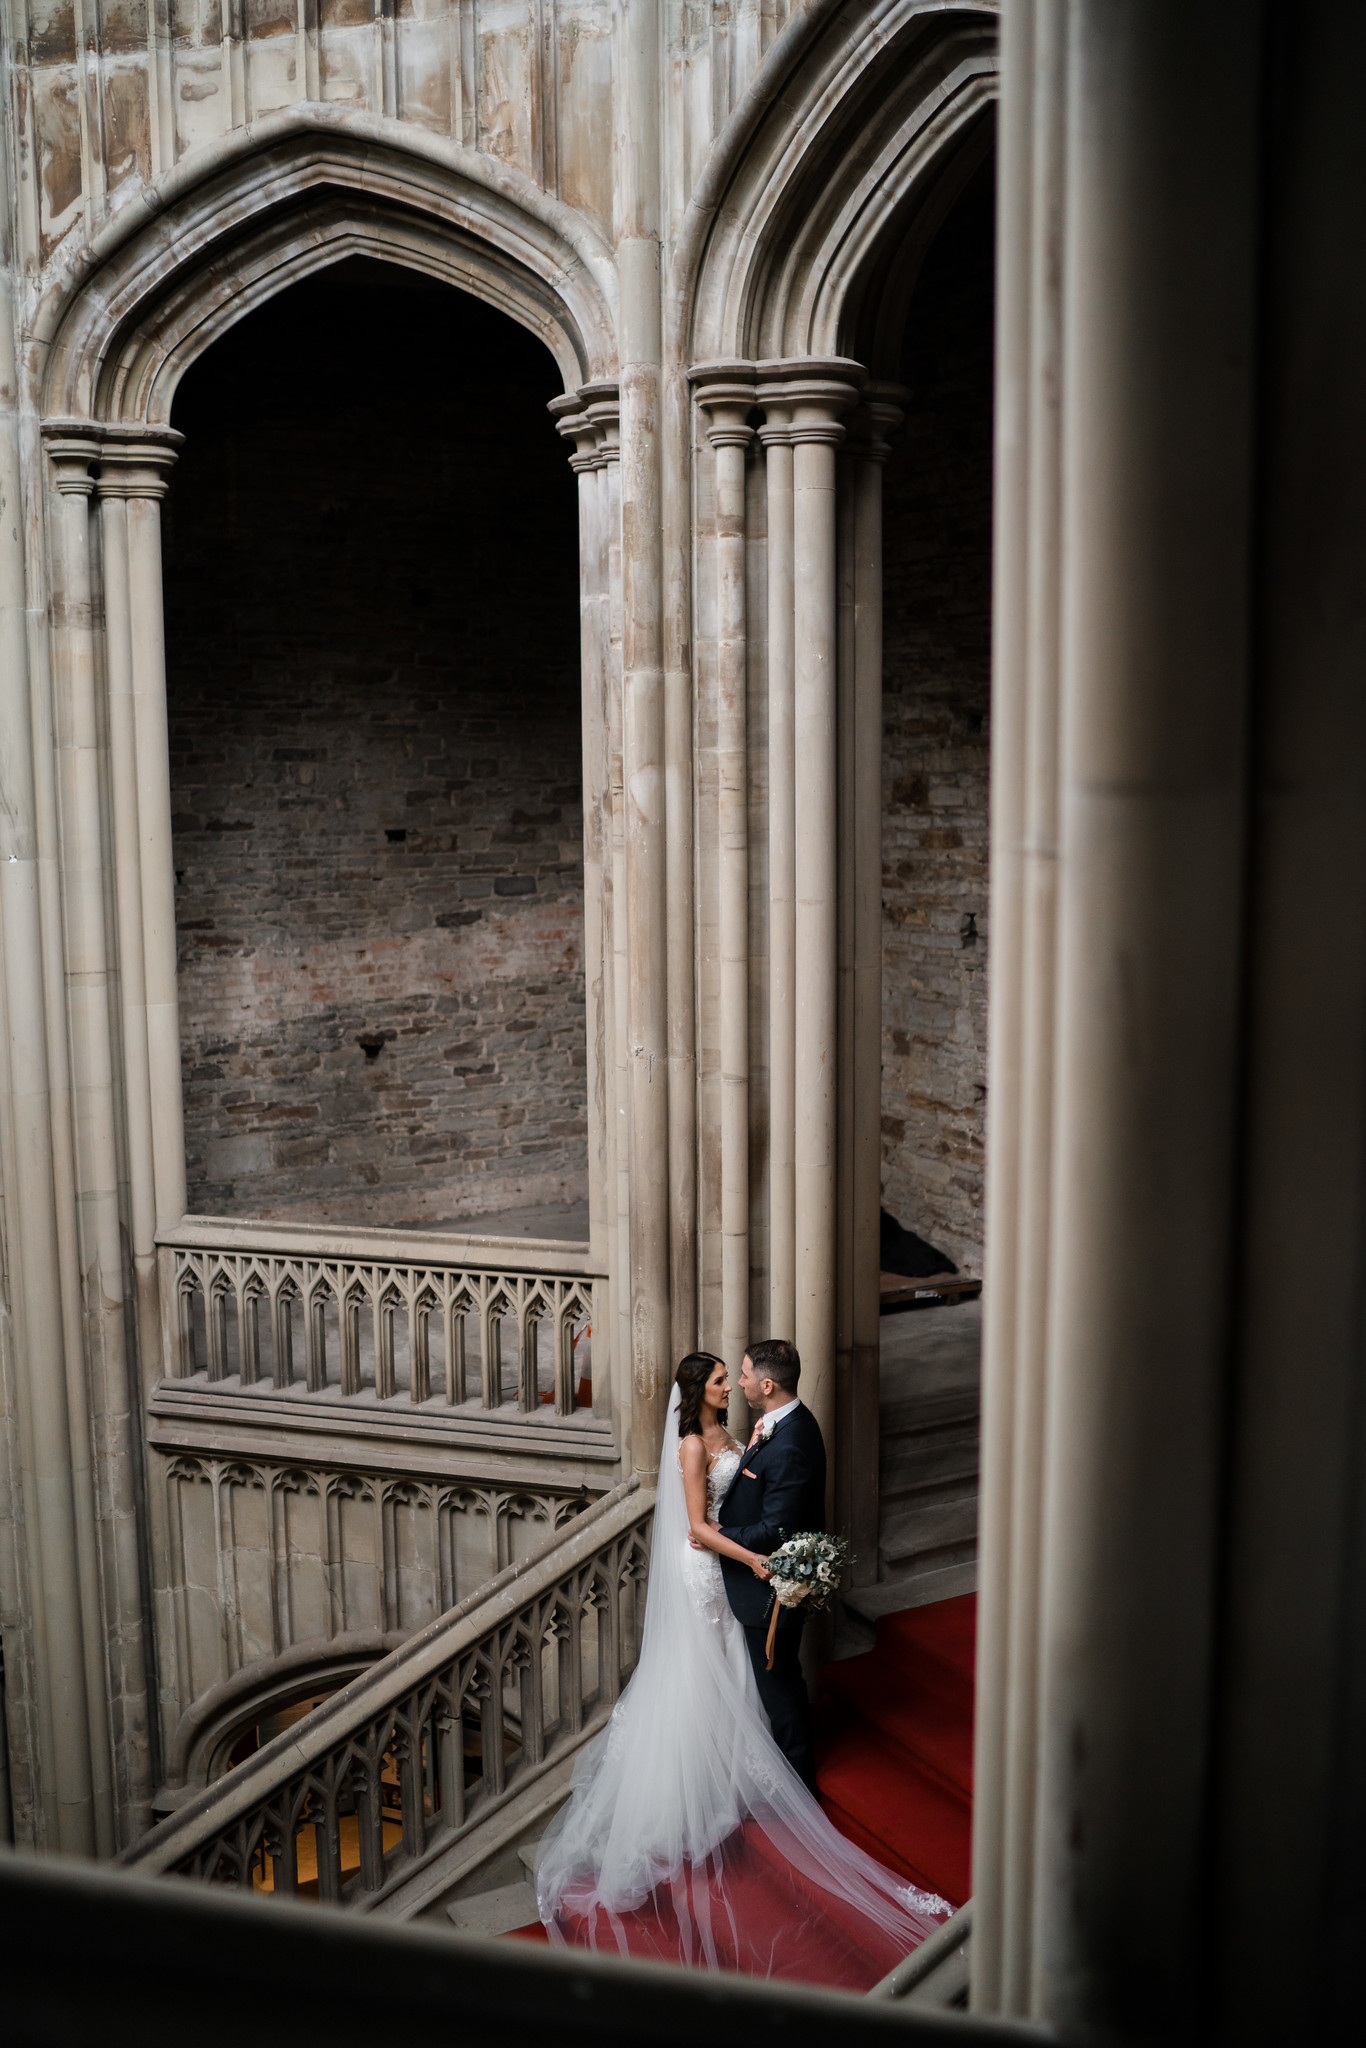 Bride and groom look at each other standing on top of the grand stairs